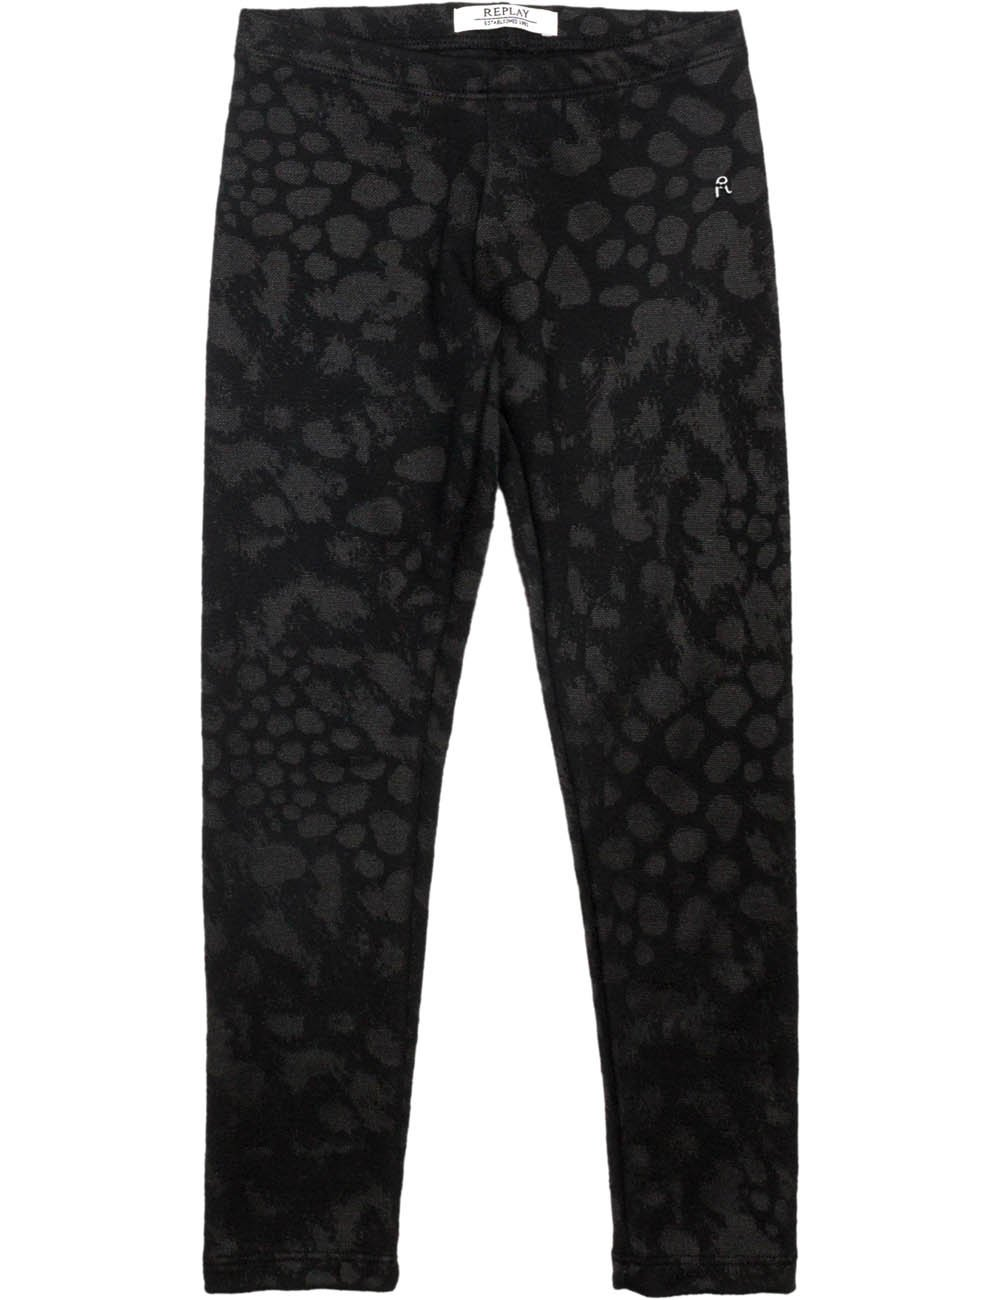 Replay Girls Black Jaquard Trousers With Pattern in Size 14 Years Black